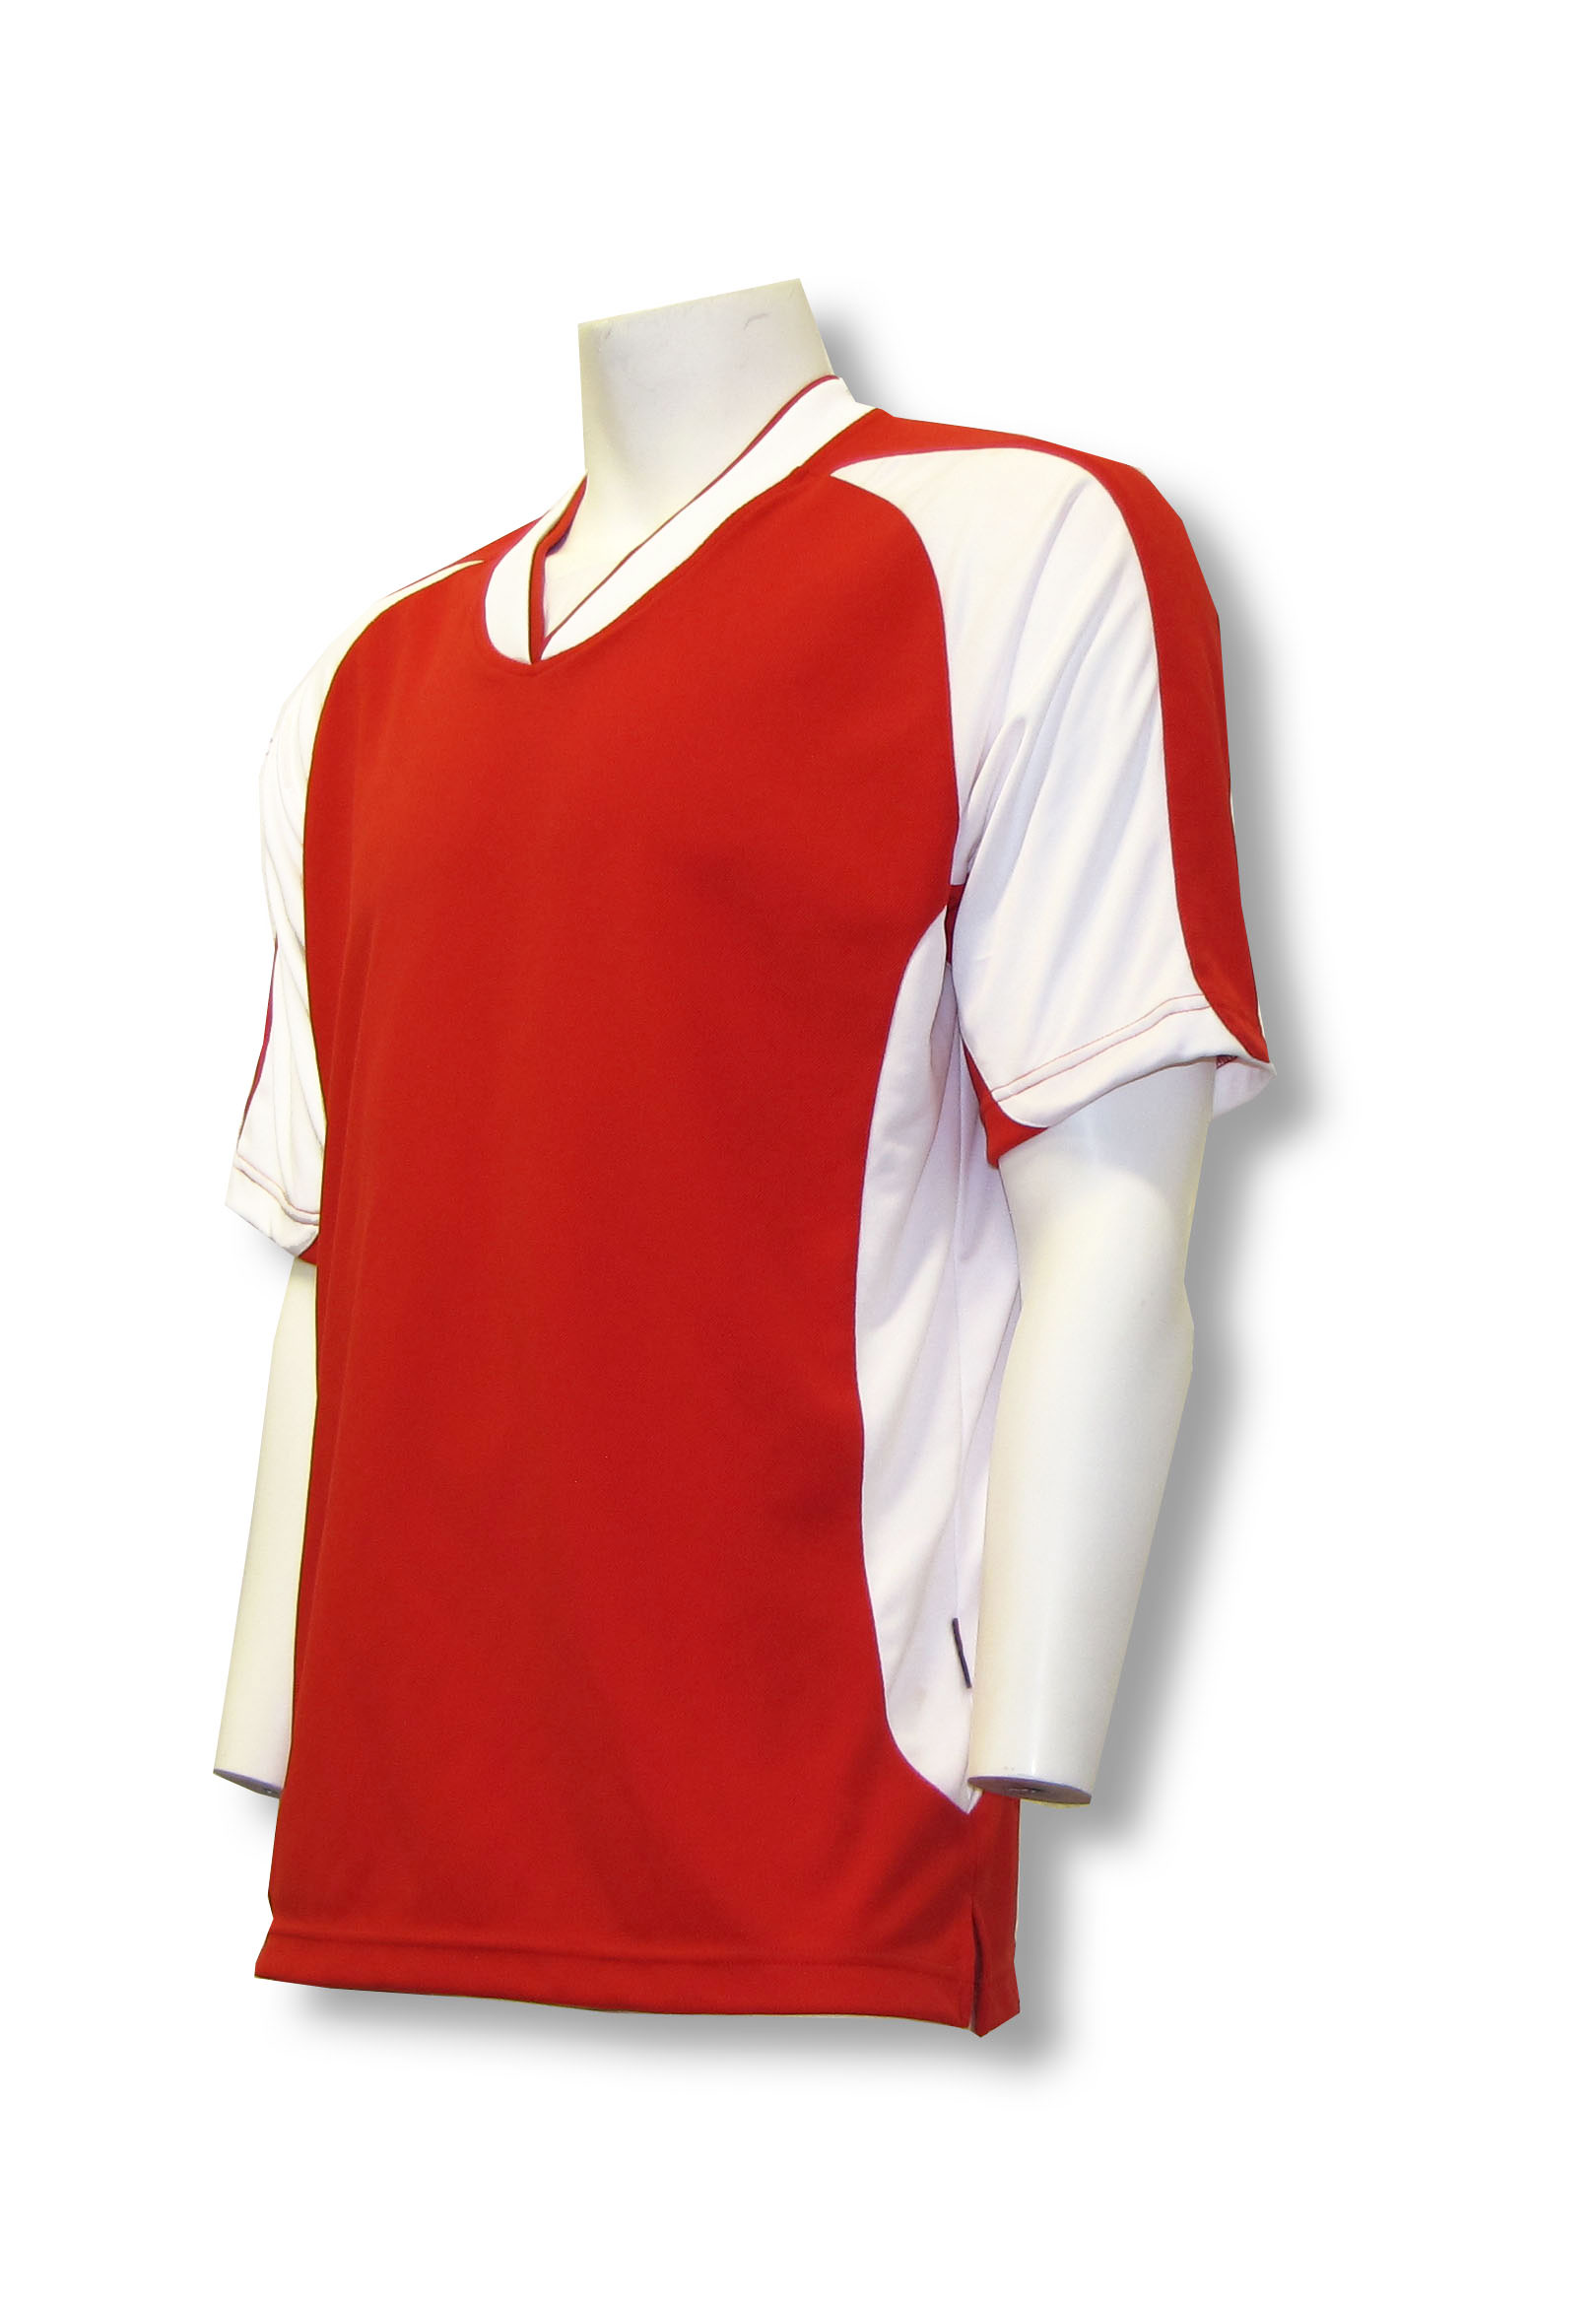 Sweeper / Falcon soccer jersey in red by Code Four Athletics